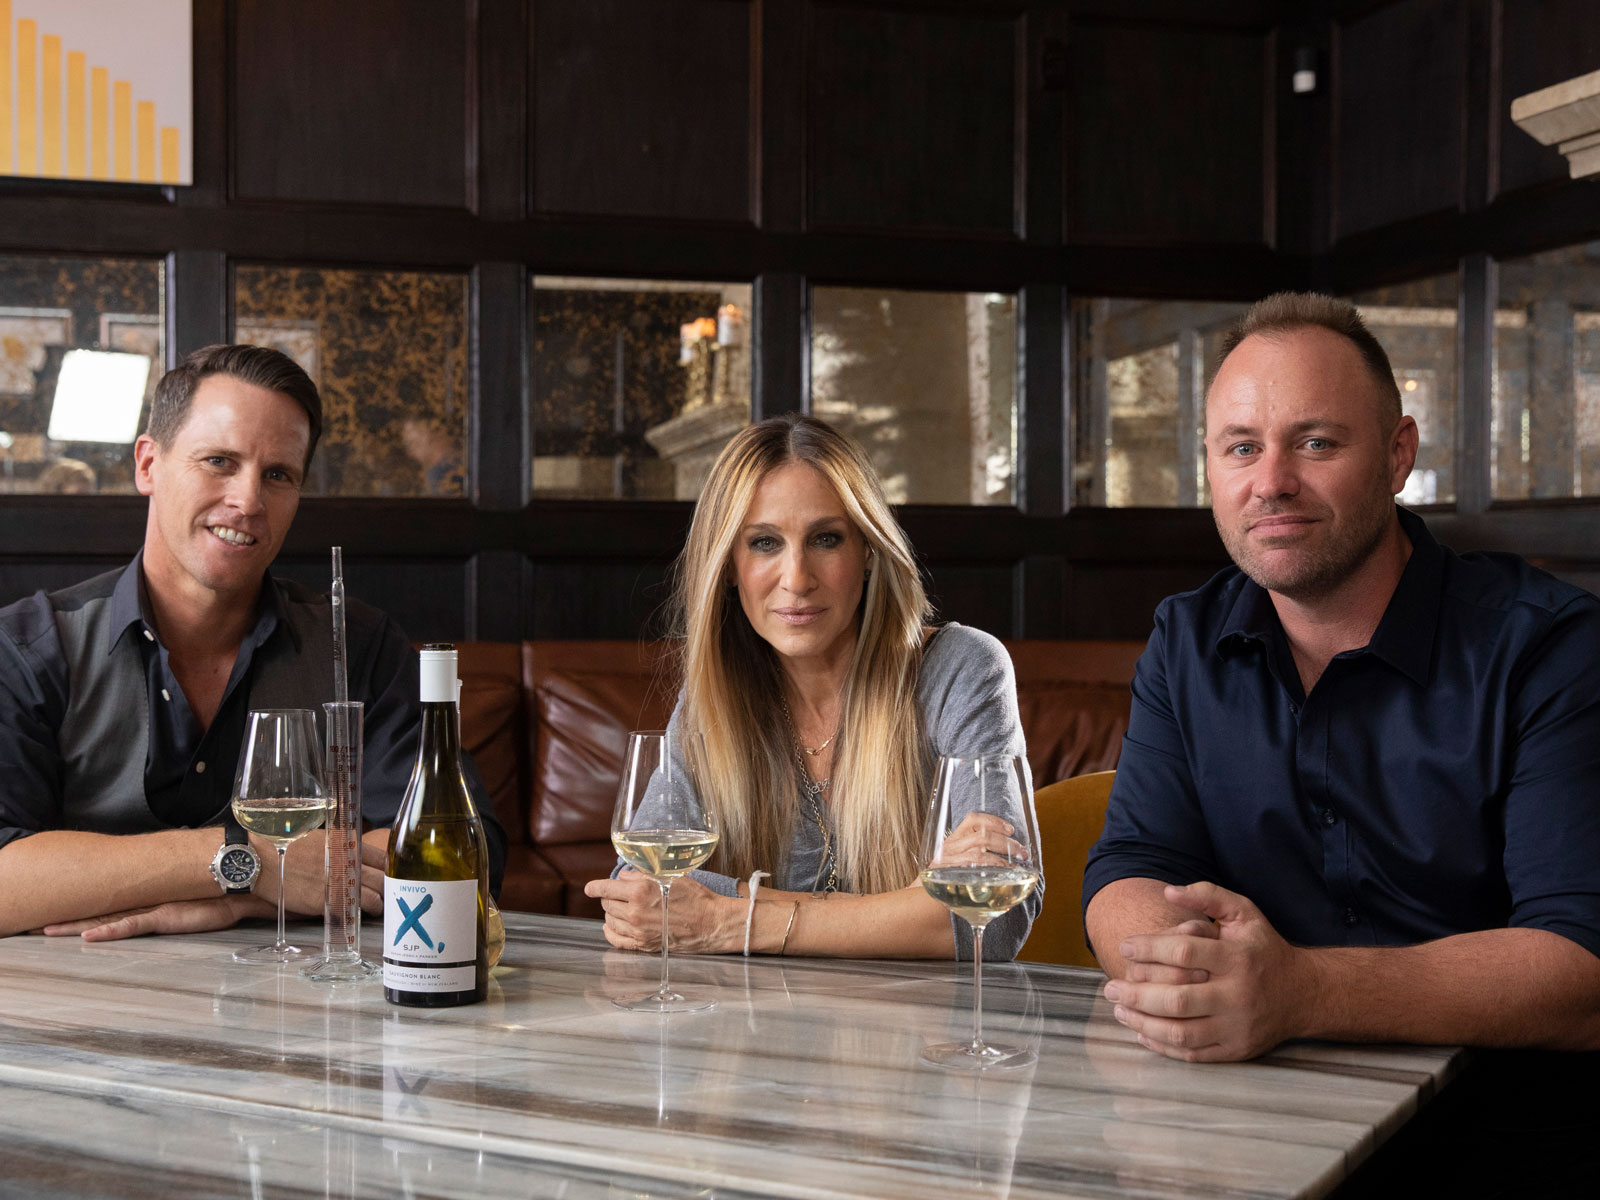 Invite & Co Sarah Jessica Parker Sauvignon Blanc launch